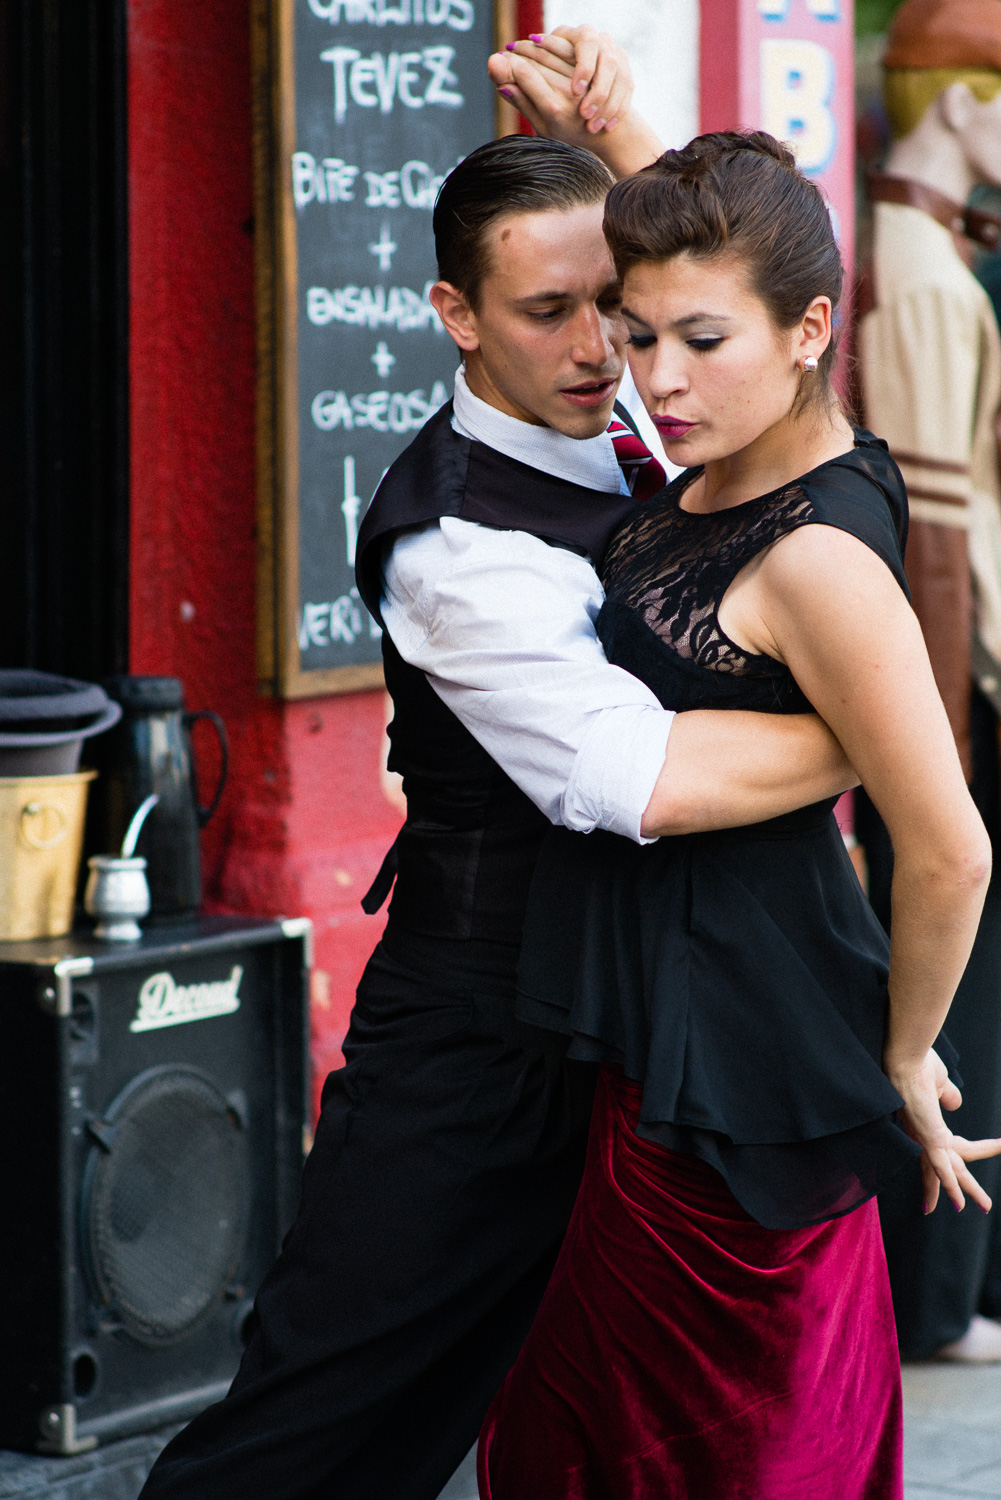 Street tango in La Boca. Note the ubiquitous mate gourd in the background.